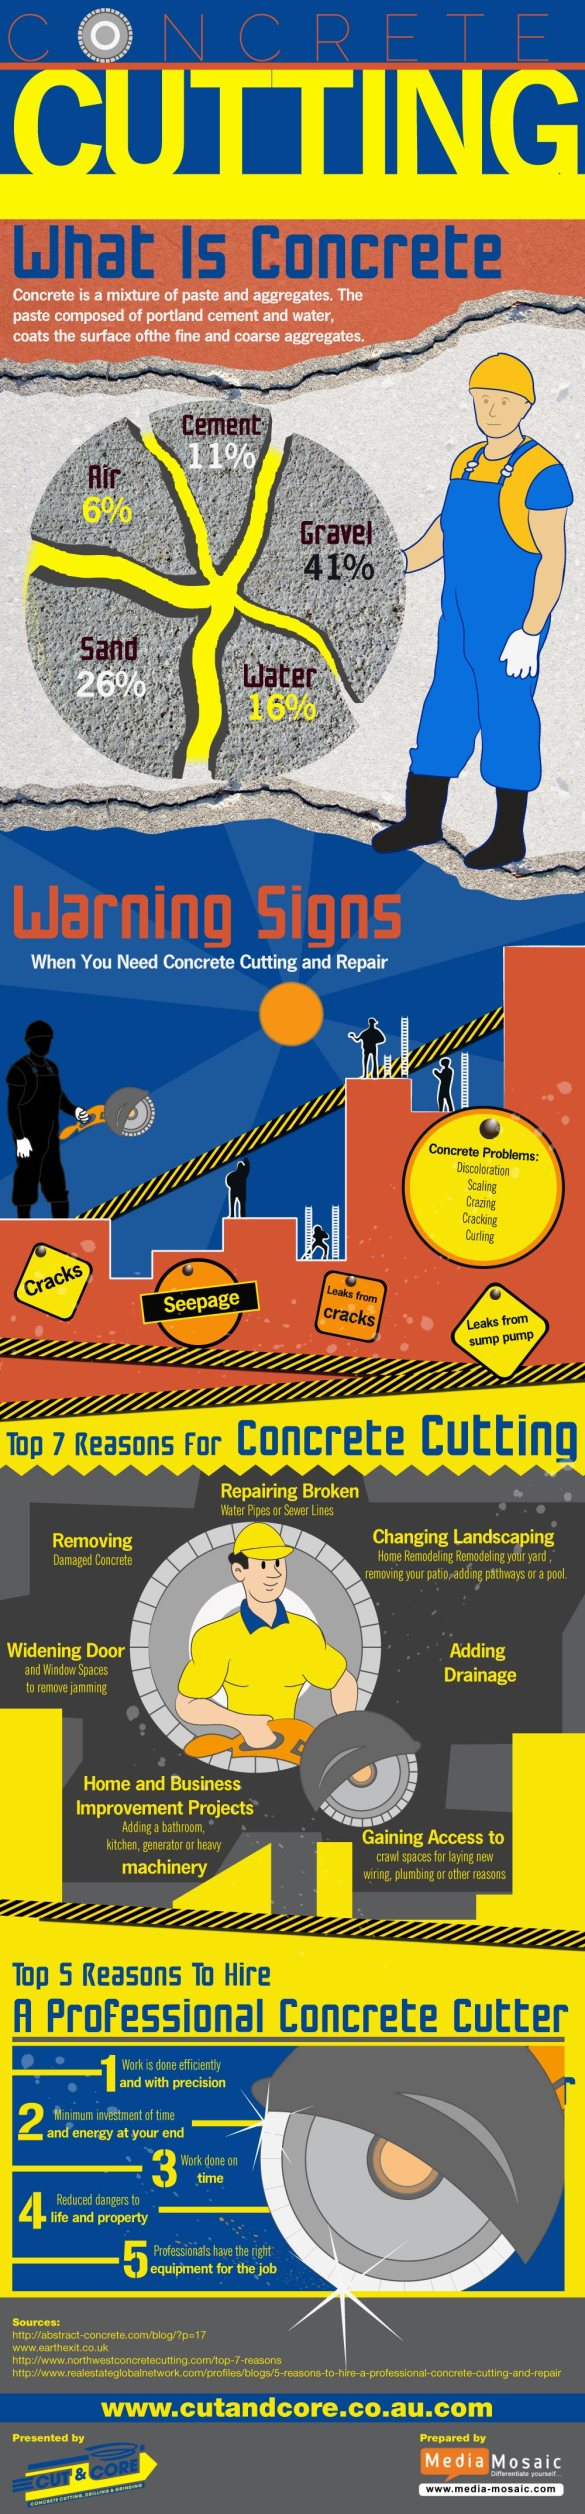 Concrete Cutting by Melbourne experts